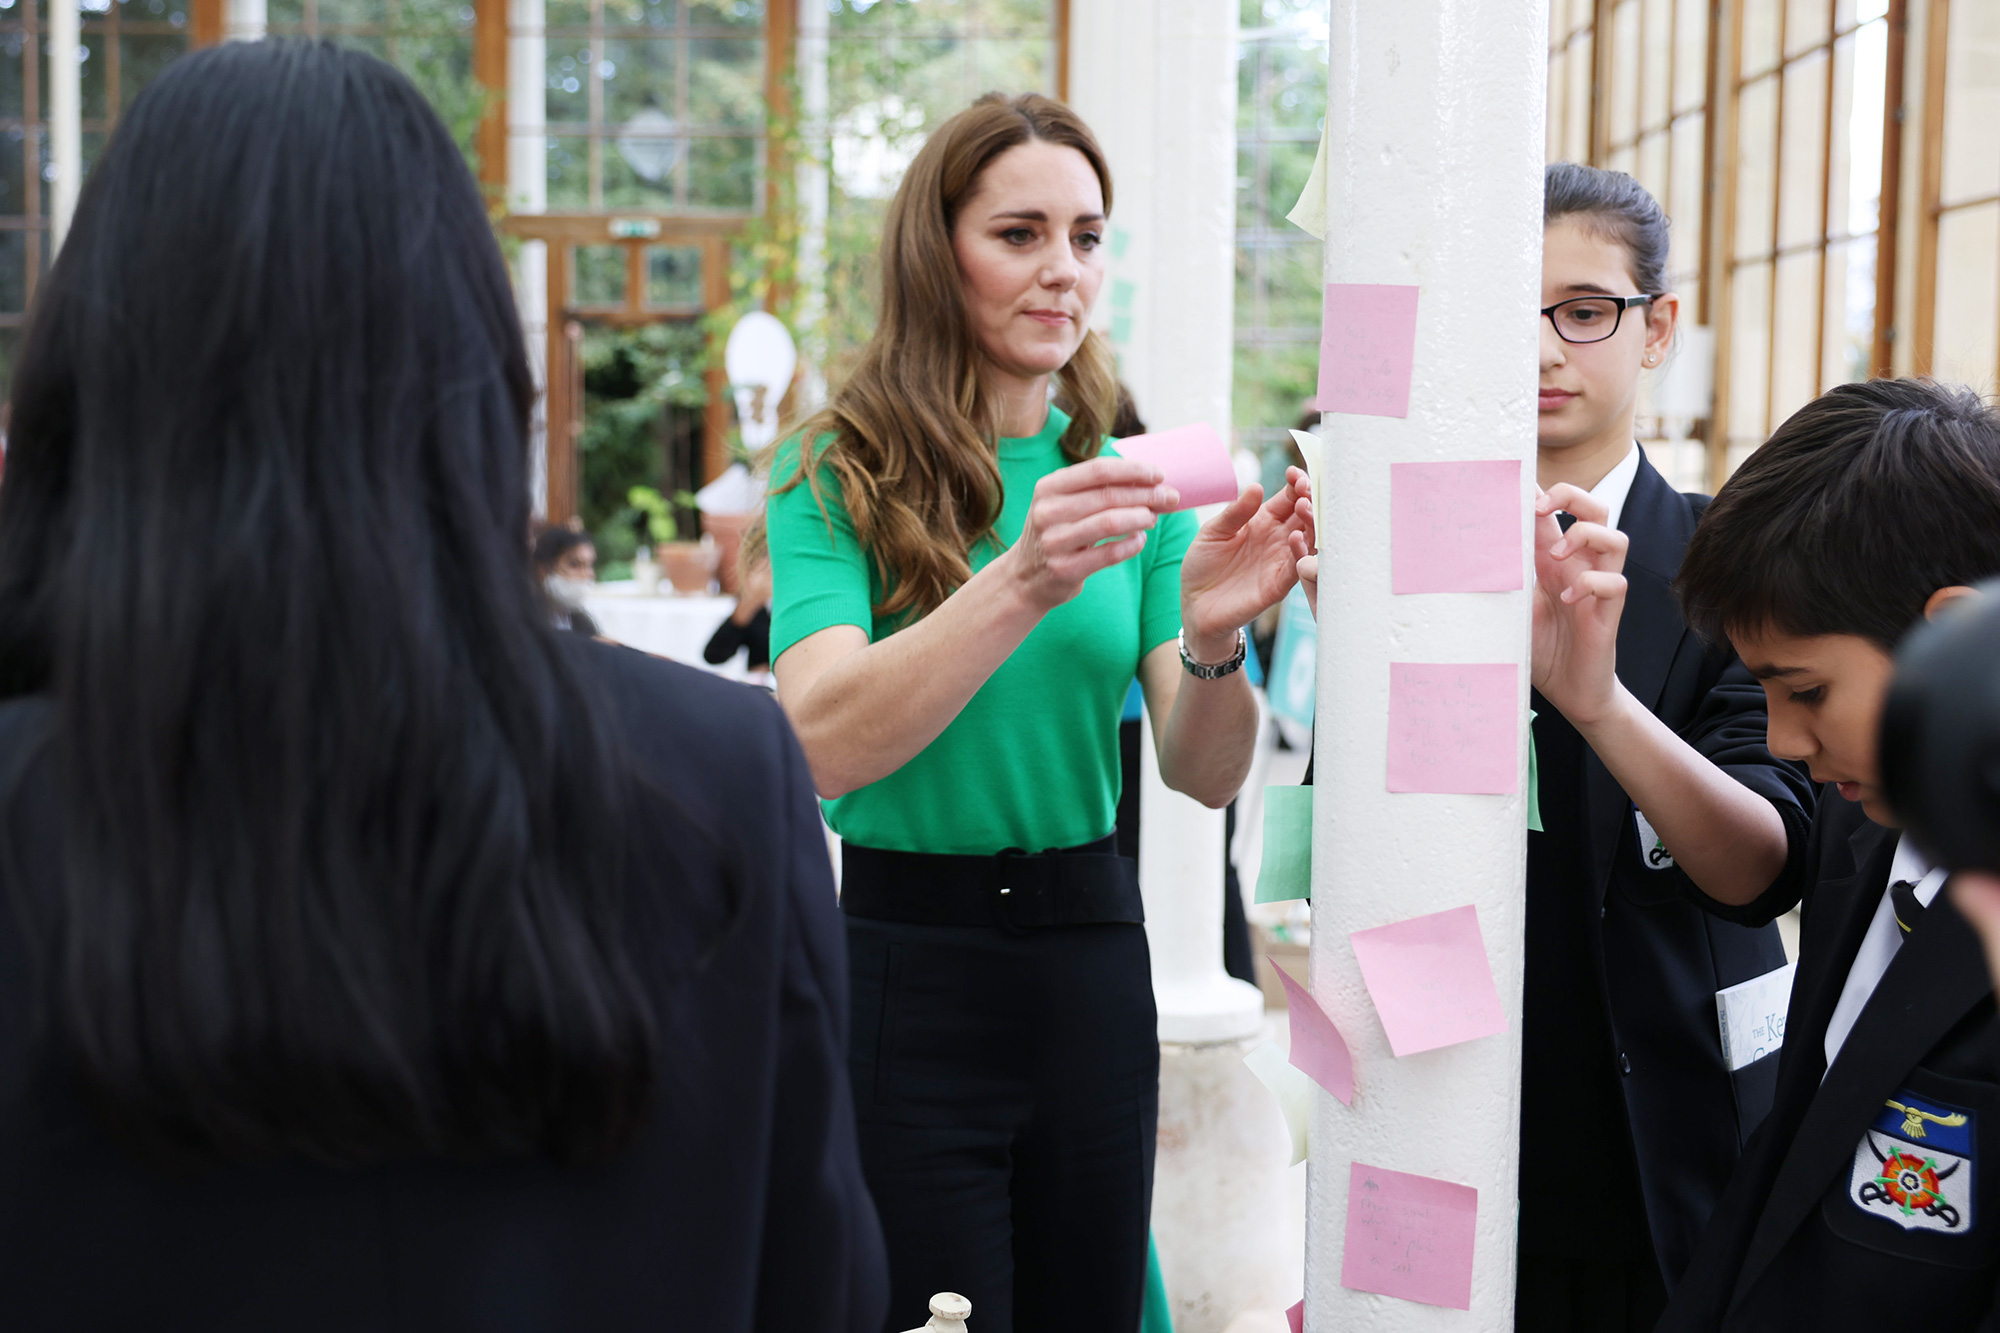 Britain's Prince William, Duke of Cambridge and Britain's Catherine, Duchess of Cambridge pose during their visit to take part in a Generation Earthshot educational initiative comprising of activities designed to generate ideas to repair the planet and spark enthusiasm for the natural world, at Kew Gardens, London on October 13, 2021.